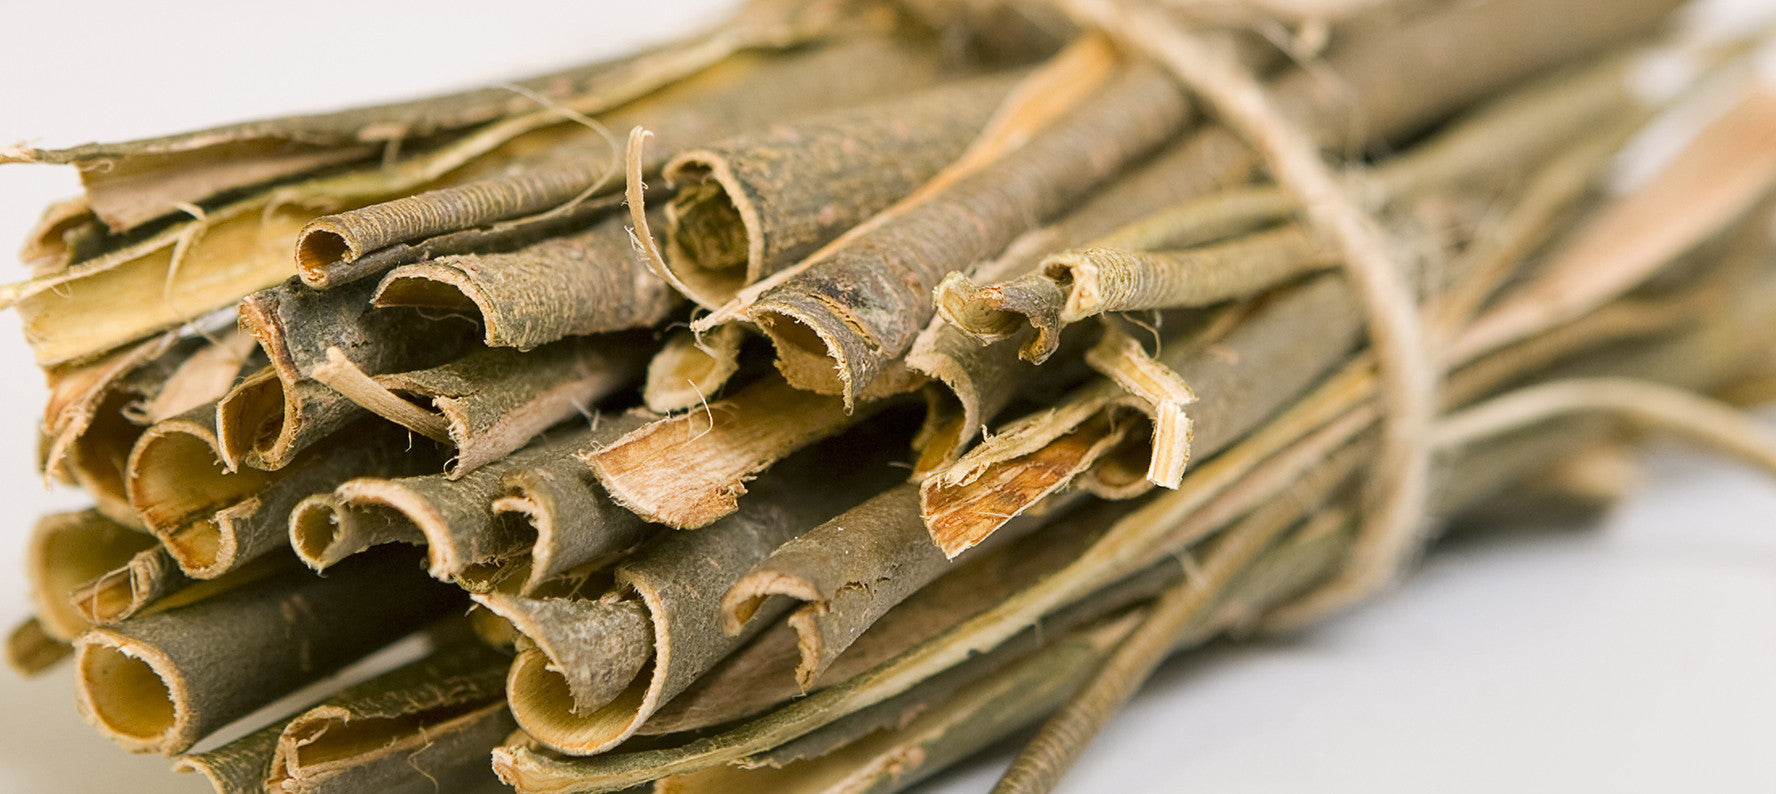 April Herb of the Month: White Willow Bark